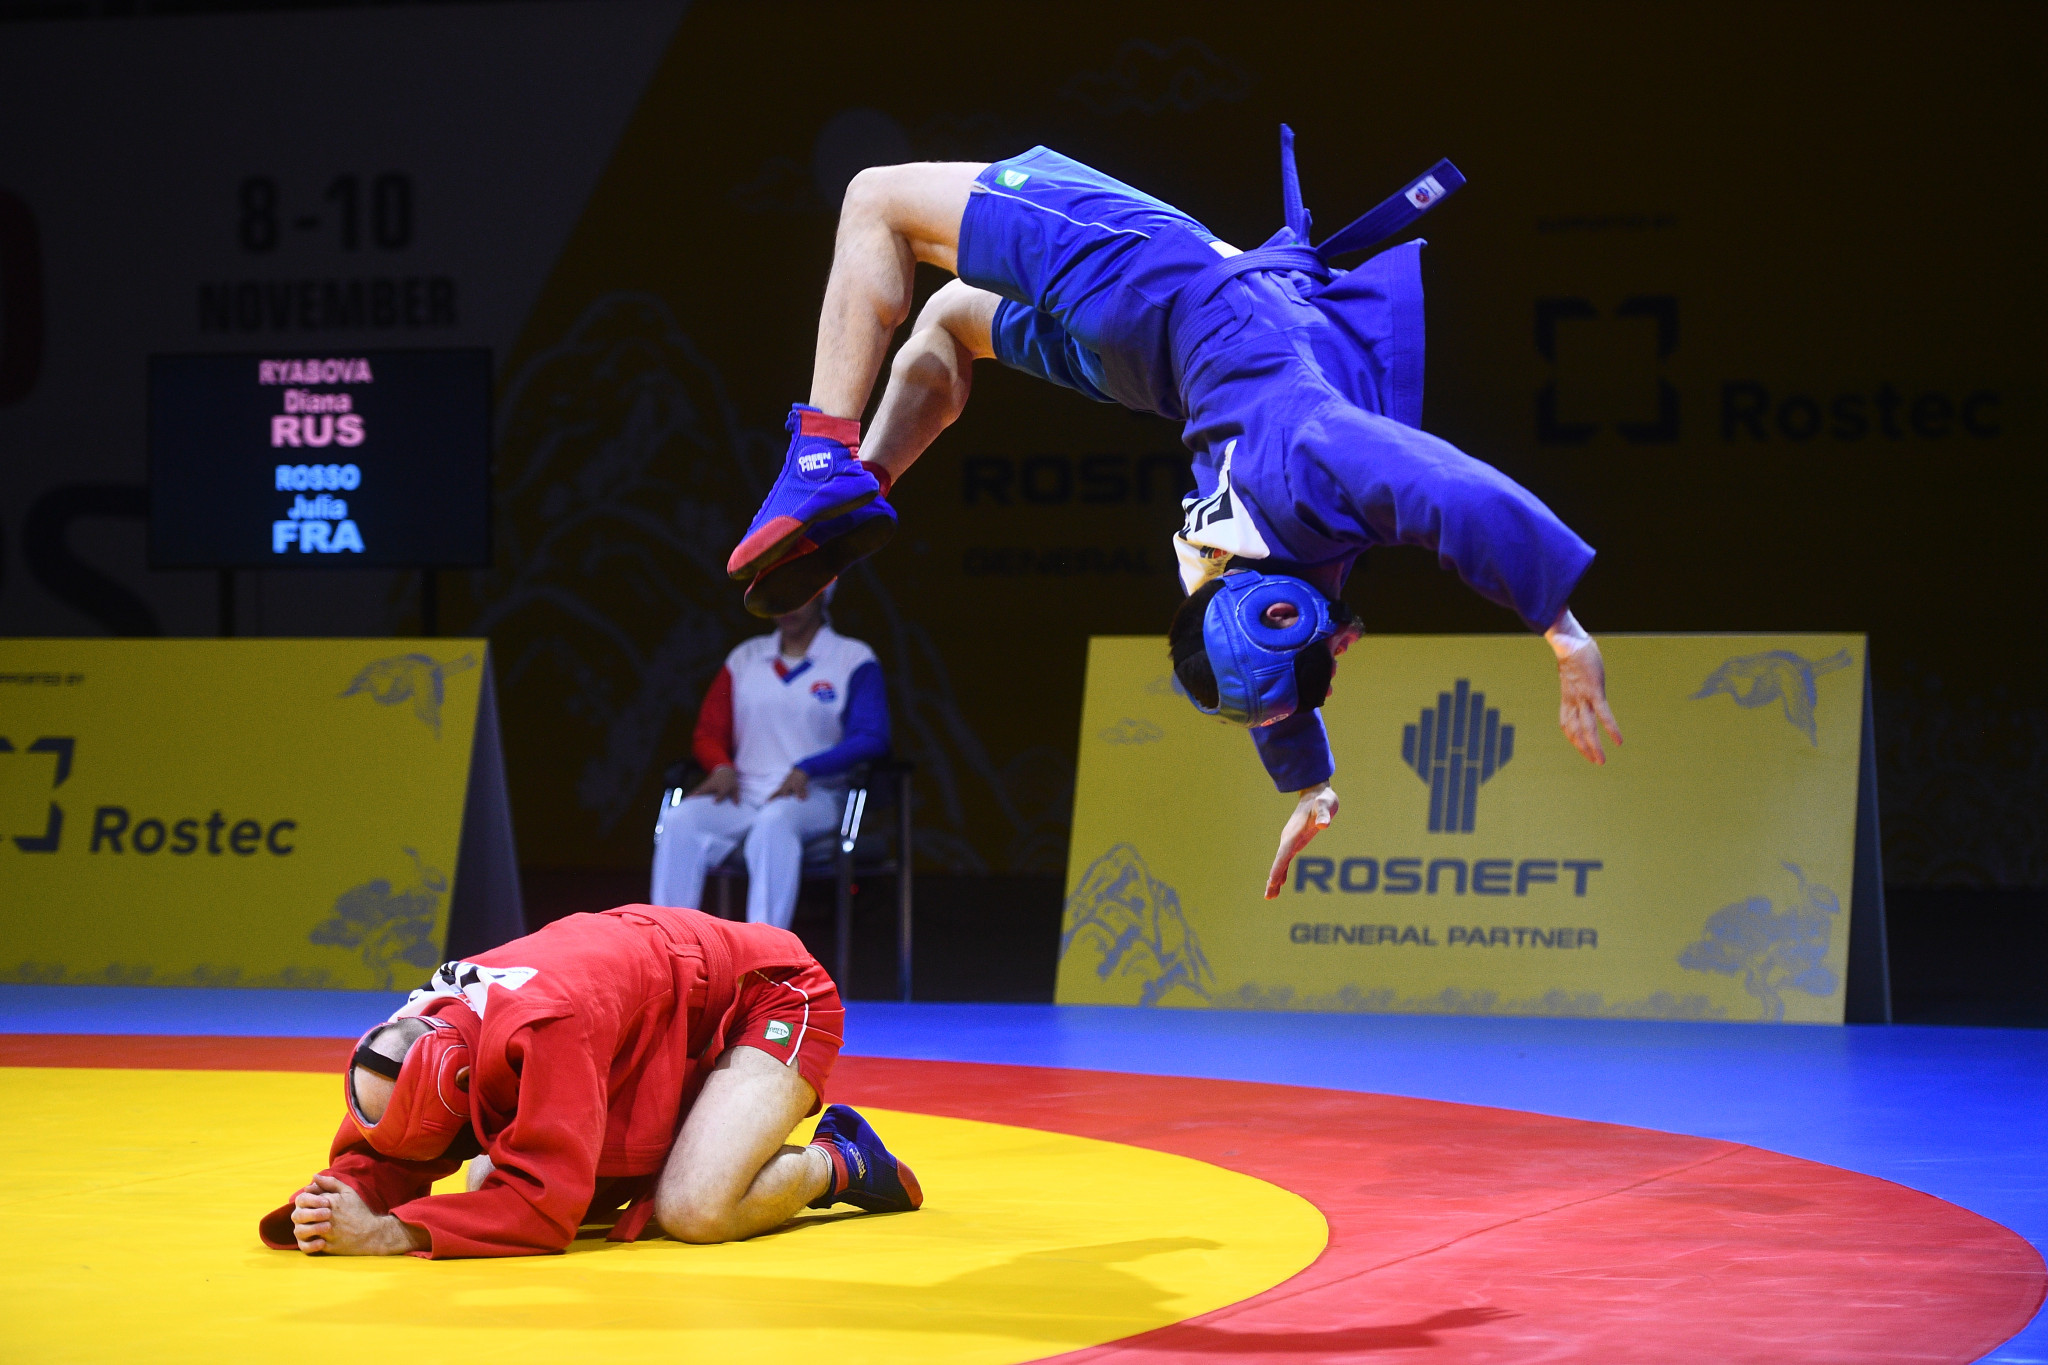 An appreciative crowd were treated to a dramatic blind sambo demonstration at the World Sambo Championships ©FIAS